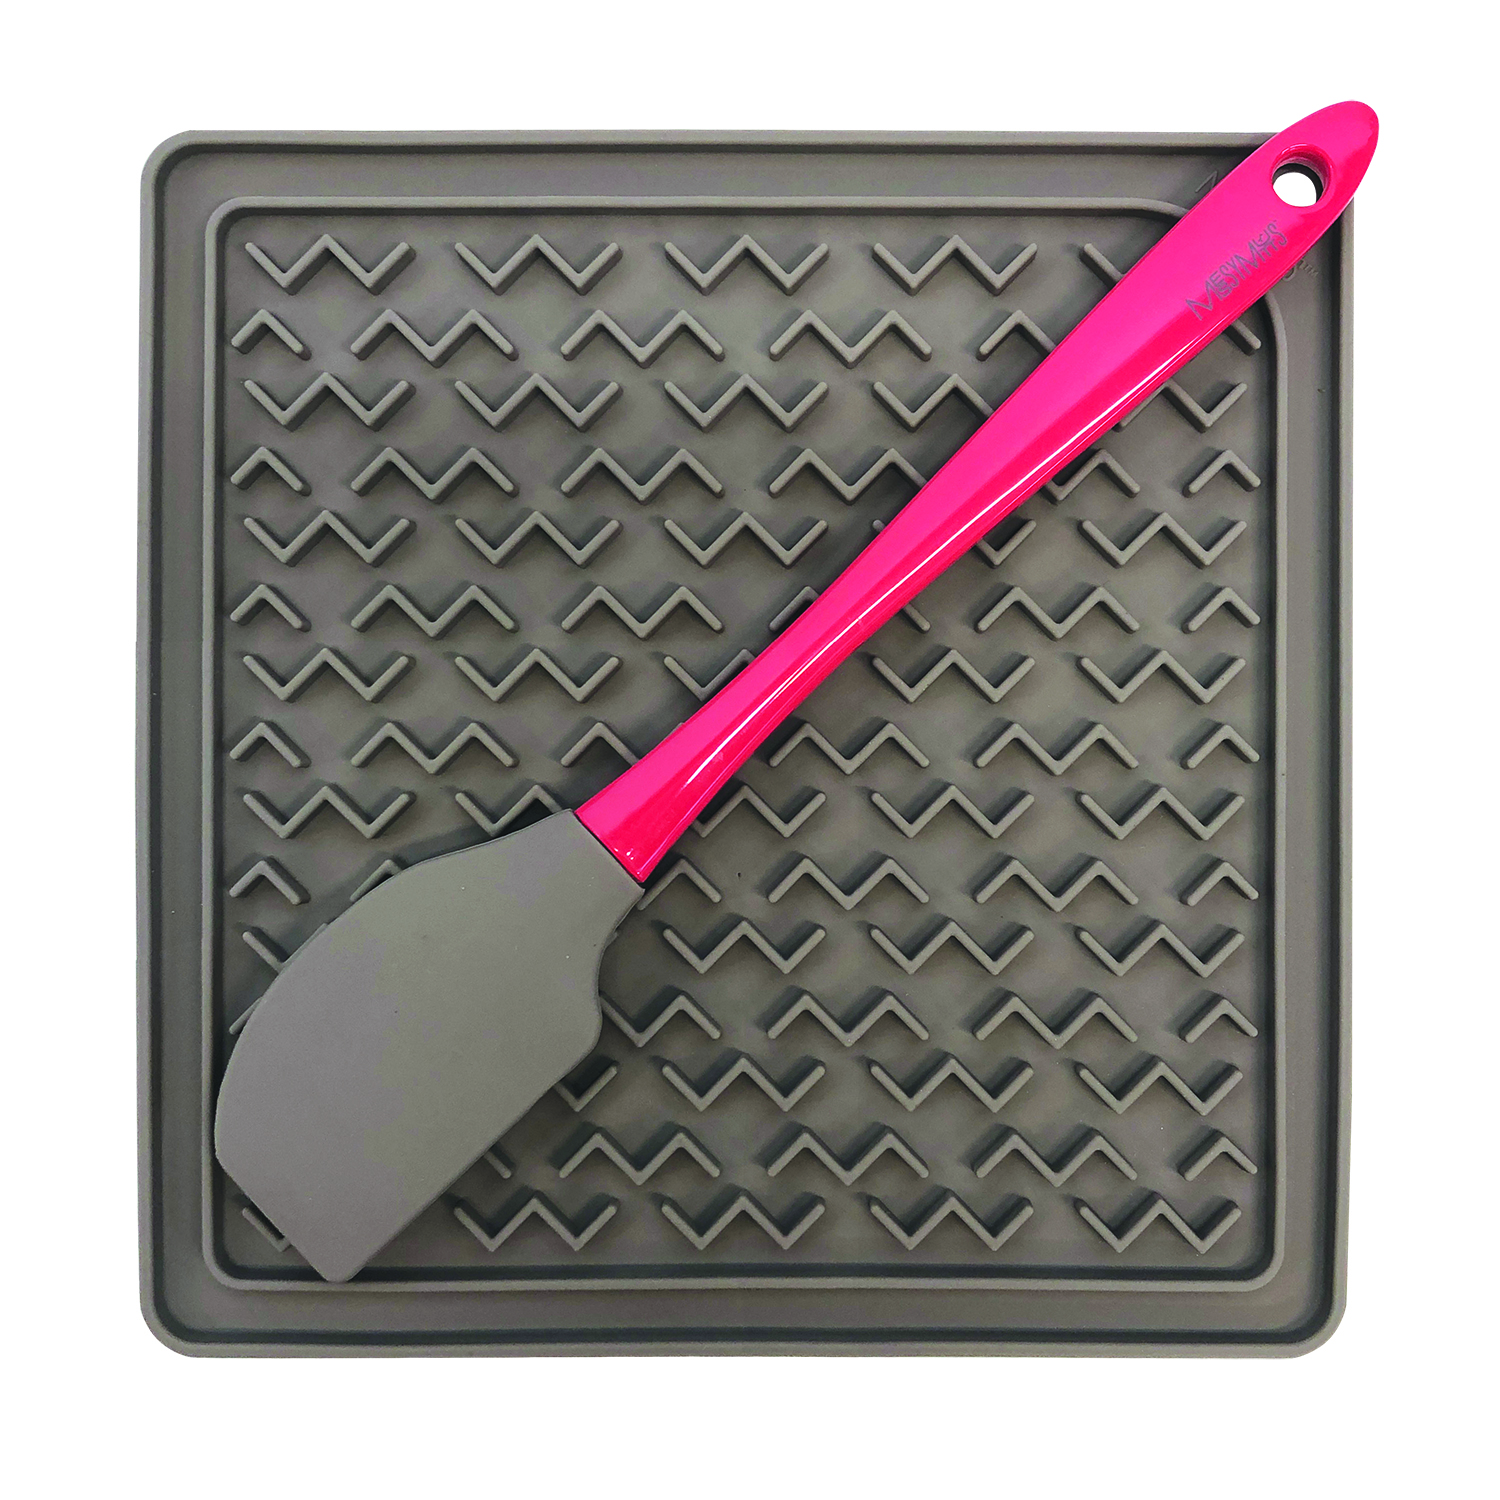 Messy Mutts Slow Feeder Interactive Silicone Lick Mat